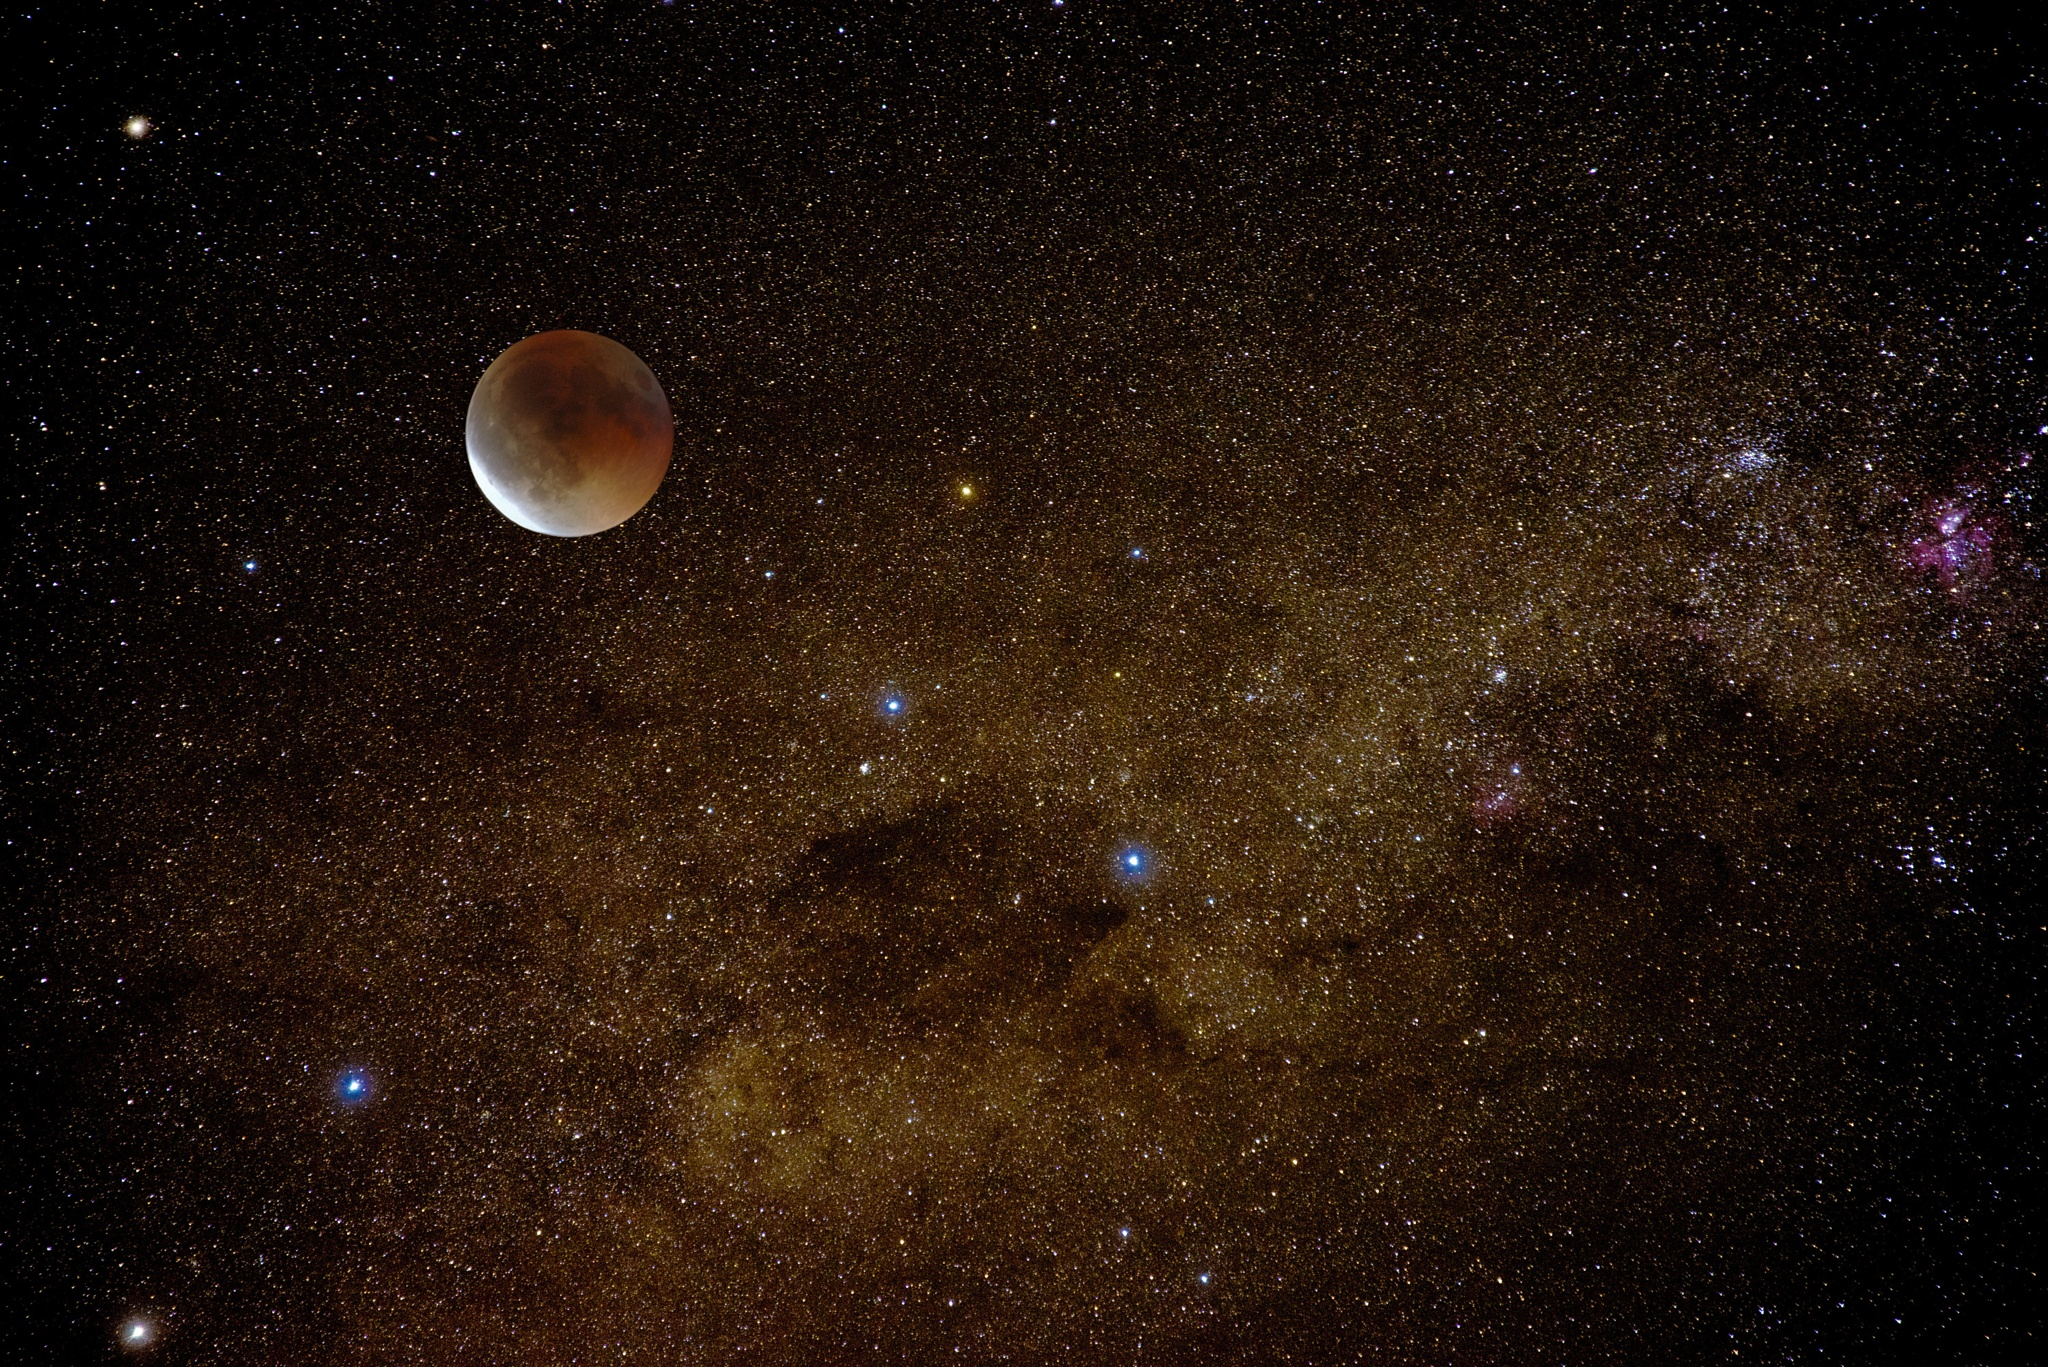 Lunar Eclipse and Milky Way by Graham Levi